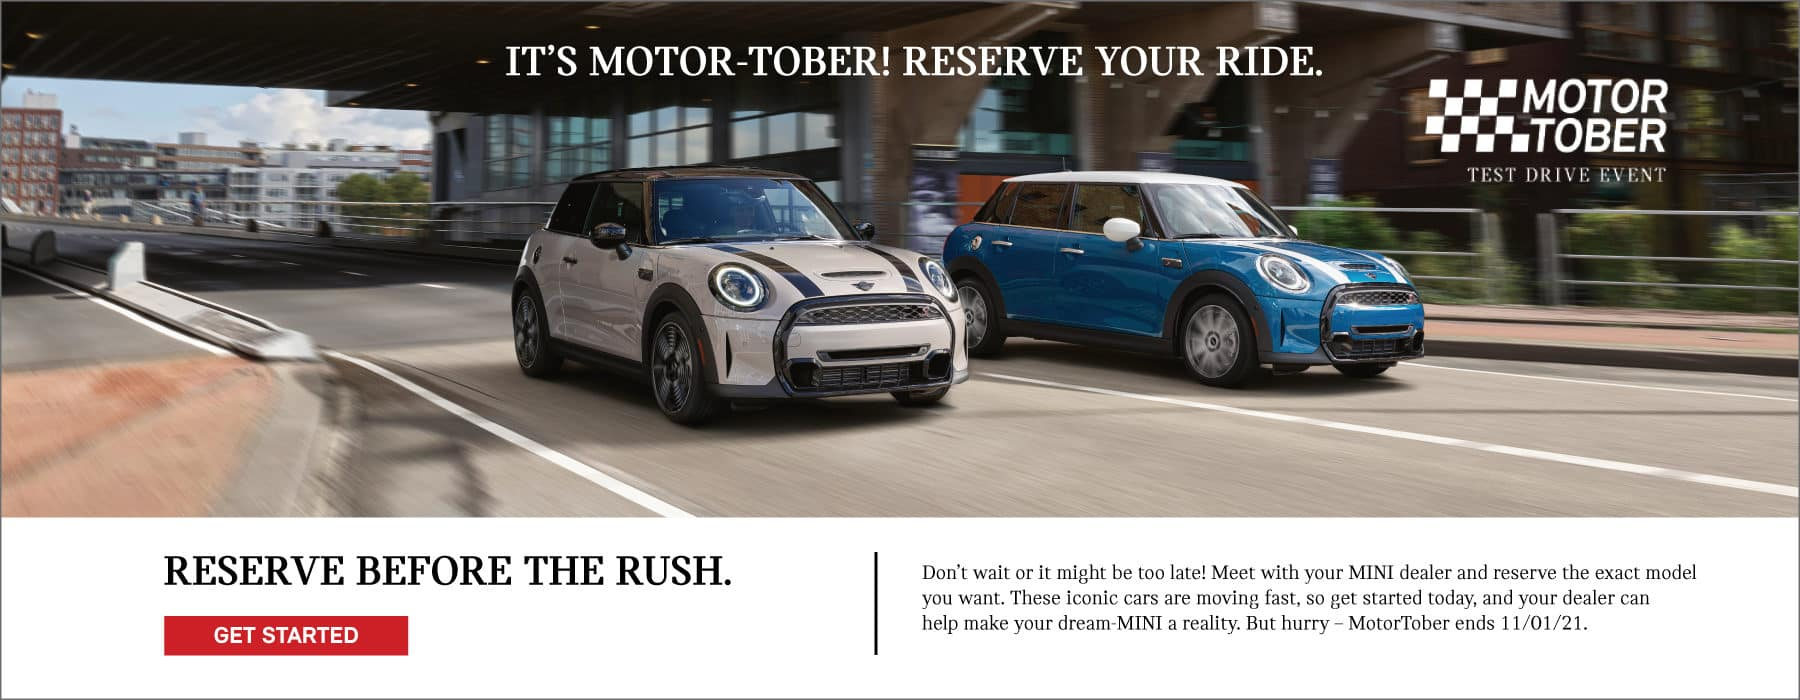 IT'S MOTOR-TOBER! RESERVE YOUR RIDE BEFORE THE RUSH. Don't wait or it might be too late! Meet with your MINI dealer and reserve the exact model you want. These iconic cars are moving fast, so get started today, and your dealer can help make your dream-MINI a reality. But hurry – MotorTober ends 11/01/2021. ___